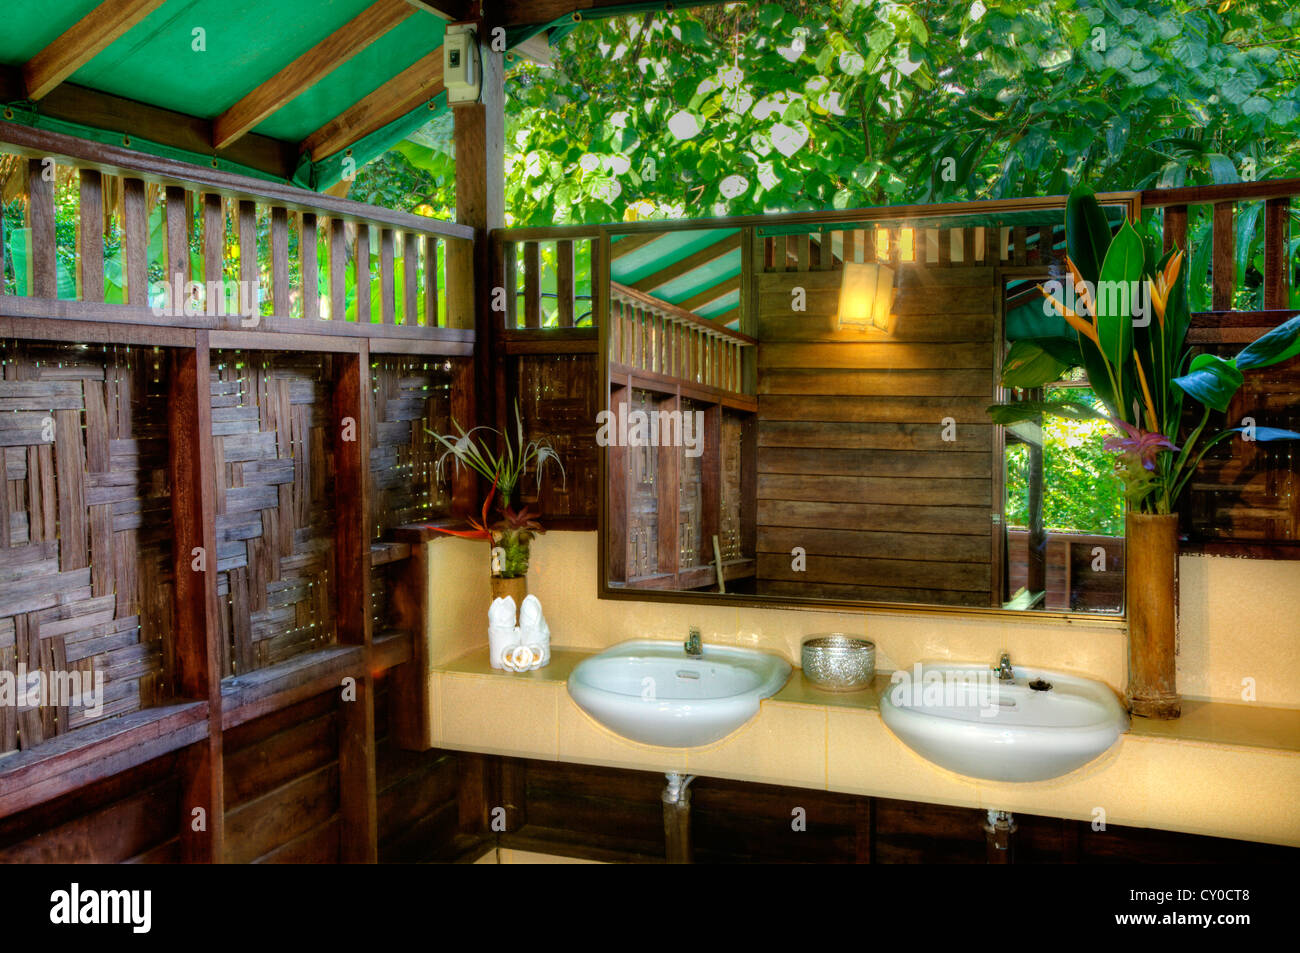 tree house bathroom at our jungle house a lodge in the rainforest near khao sok national